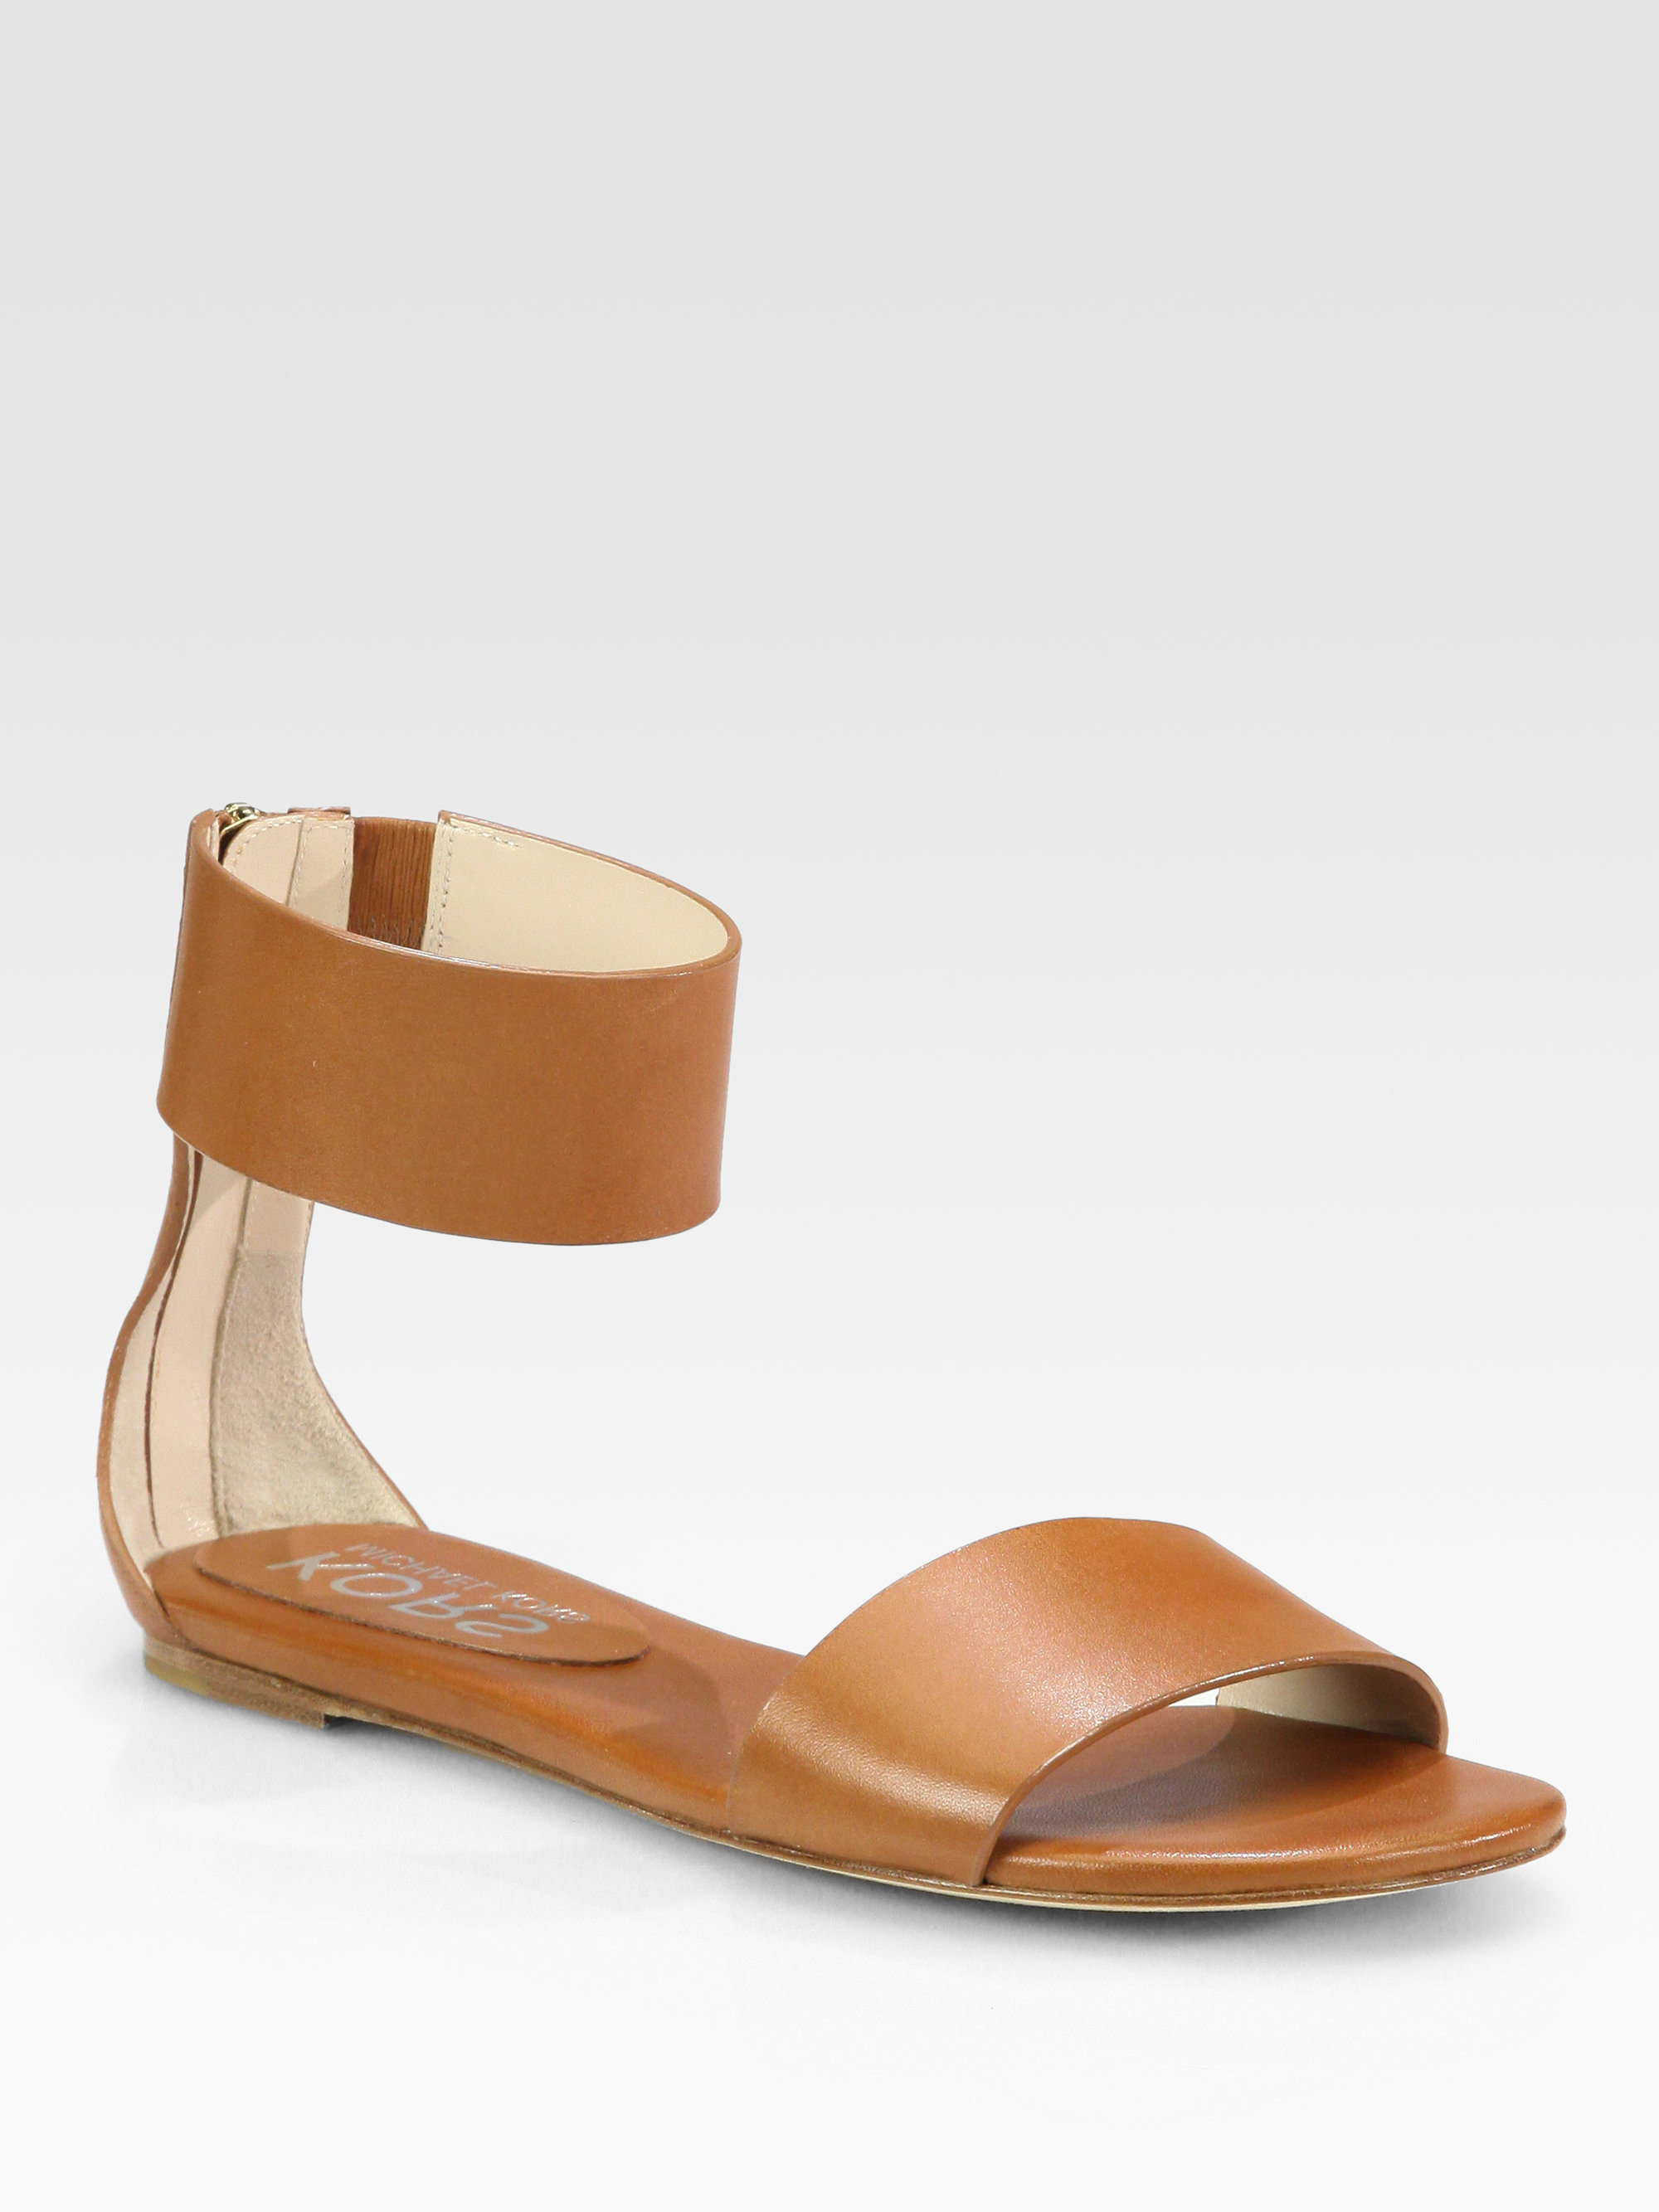 Lyst - Kors by Michael Kors Ava Leather Ankle Strap Sandals in Brown